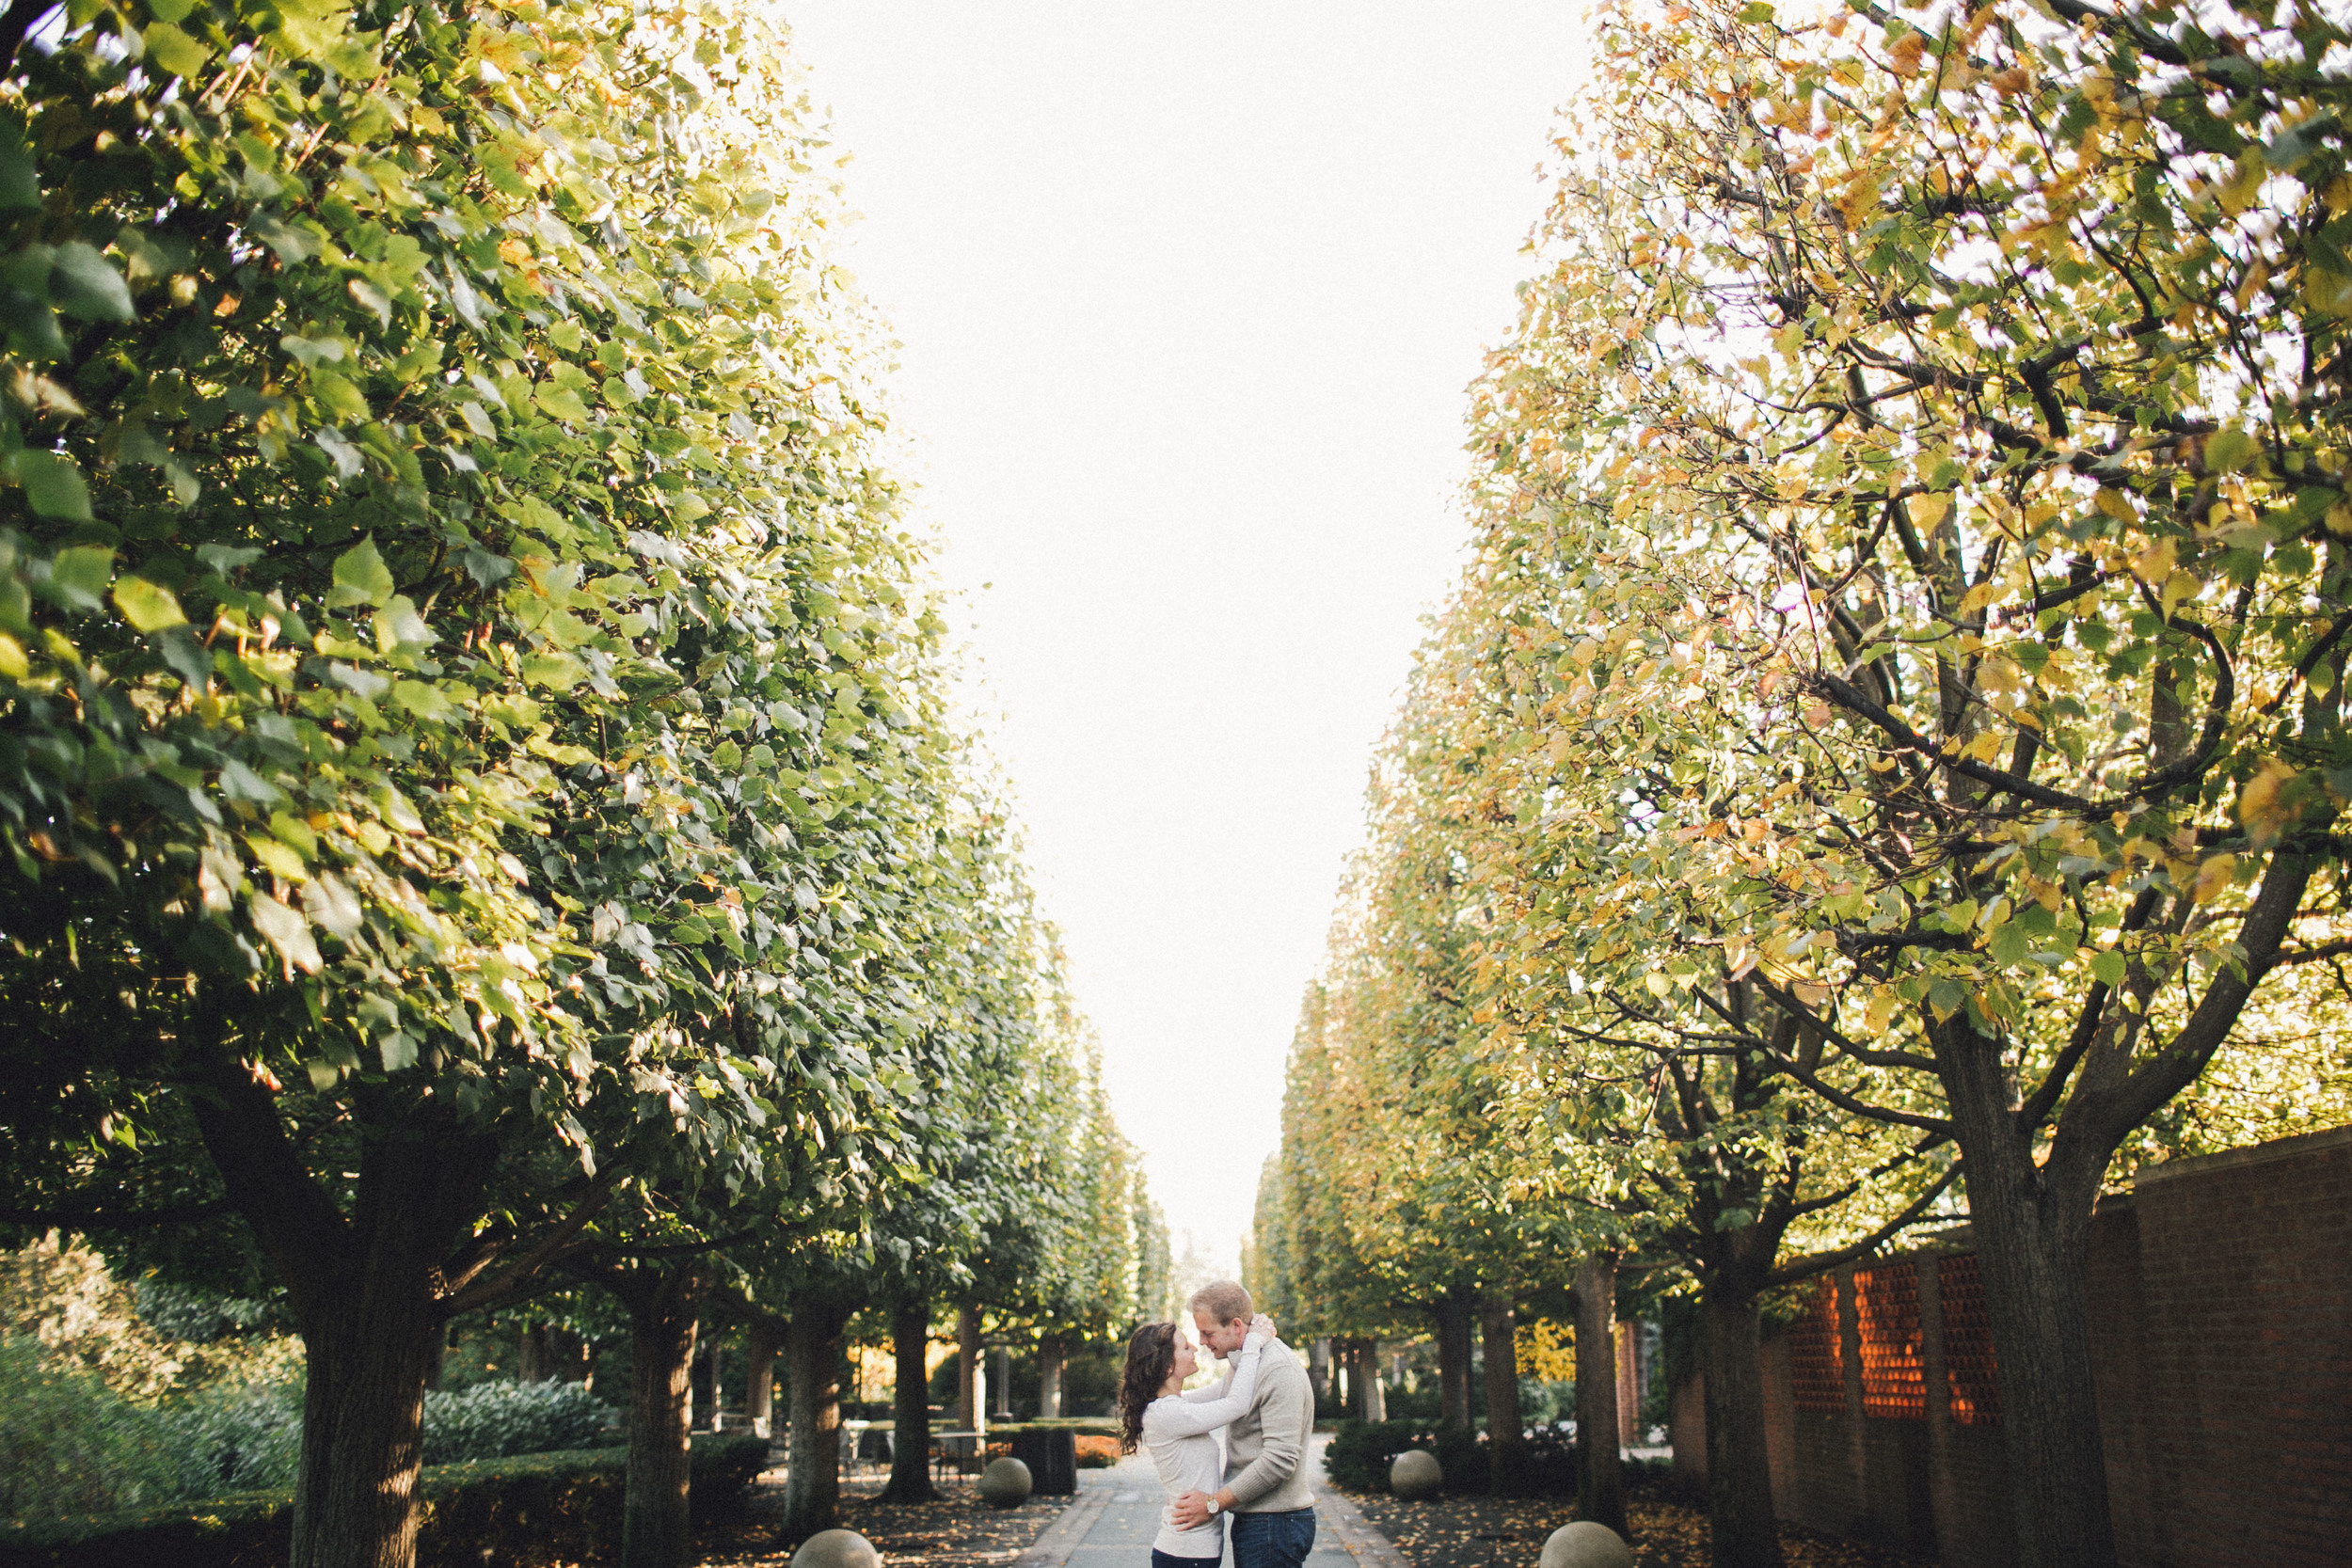 mayden photography_chicago botanical gardens engagement photo-35.jpg